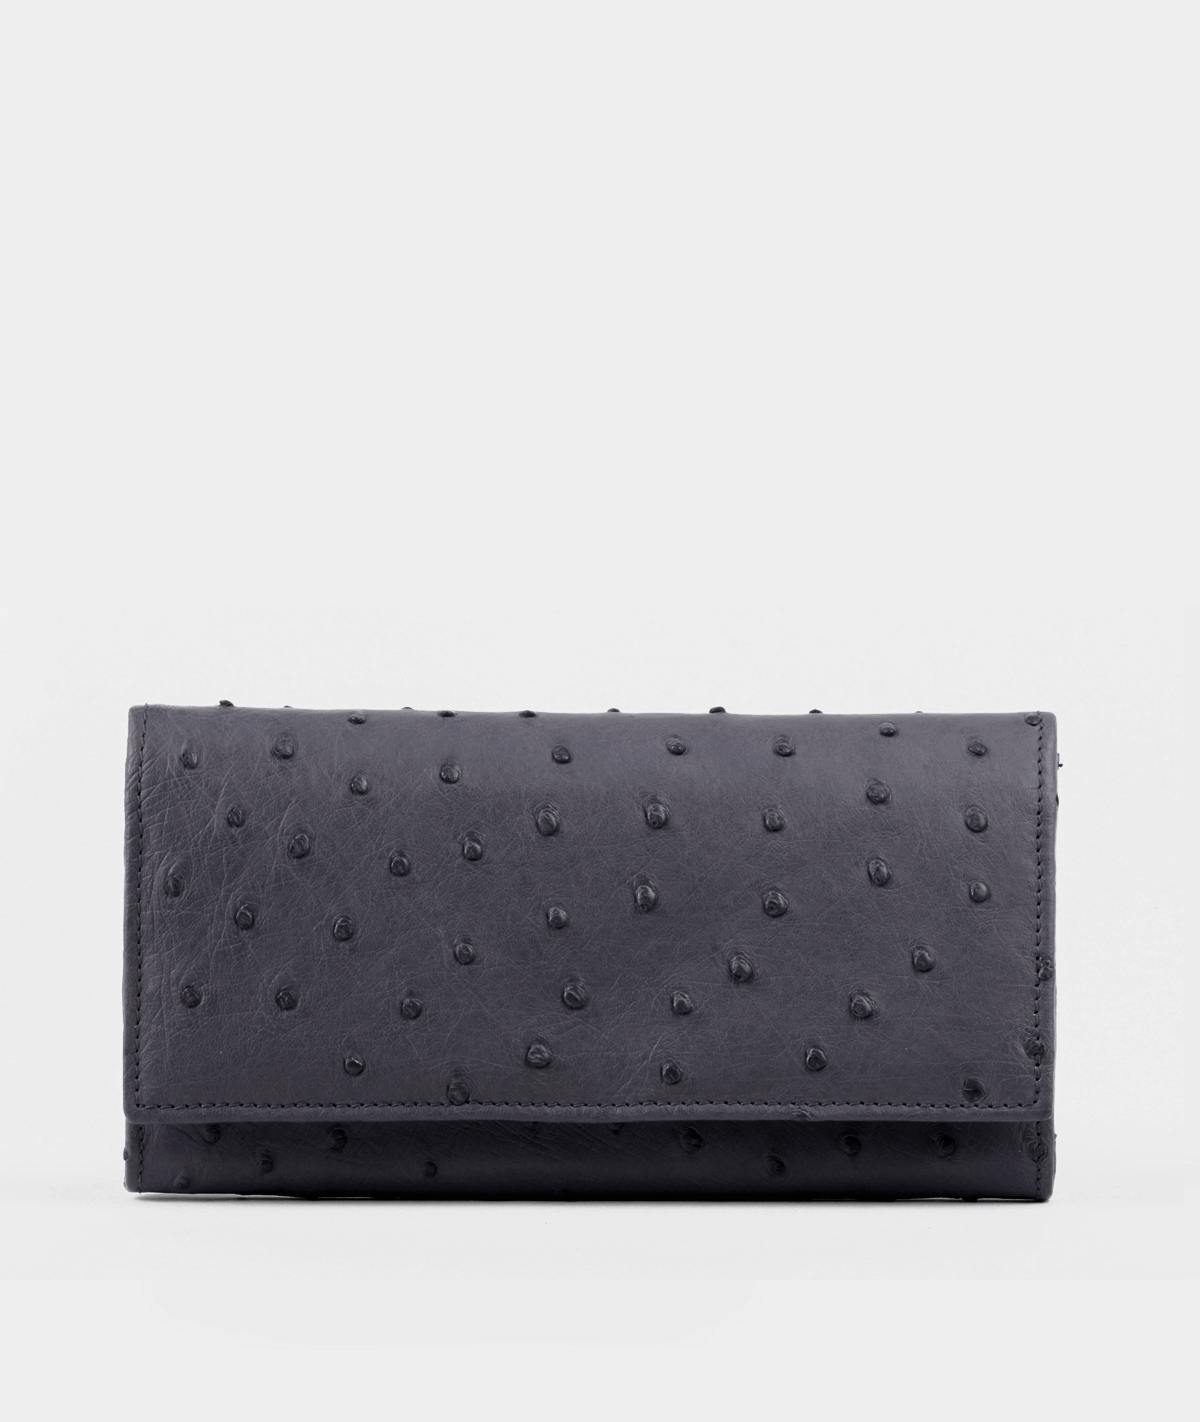 WOMENS WALLET IN ANTRACITE